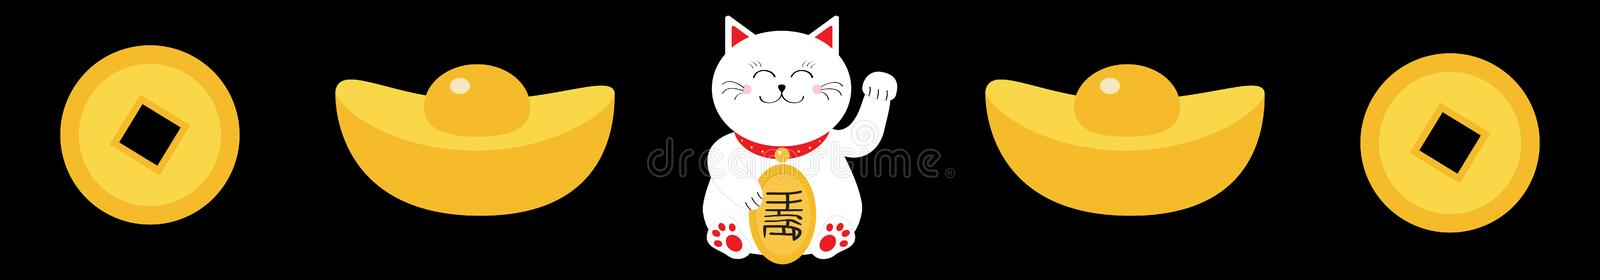 Lucky white cat sitting and holding golden coin. Chinese gold Ingot Money Japanese Maneki Neco kitten waving hand paw. Cute. Cartoon character. Flat design royalty free illustration